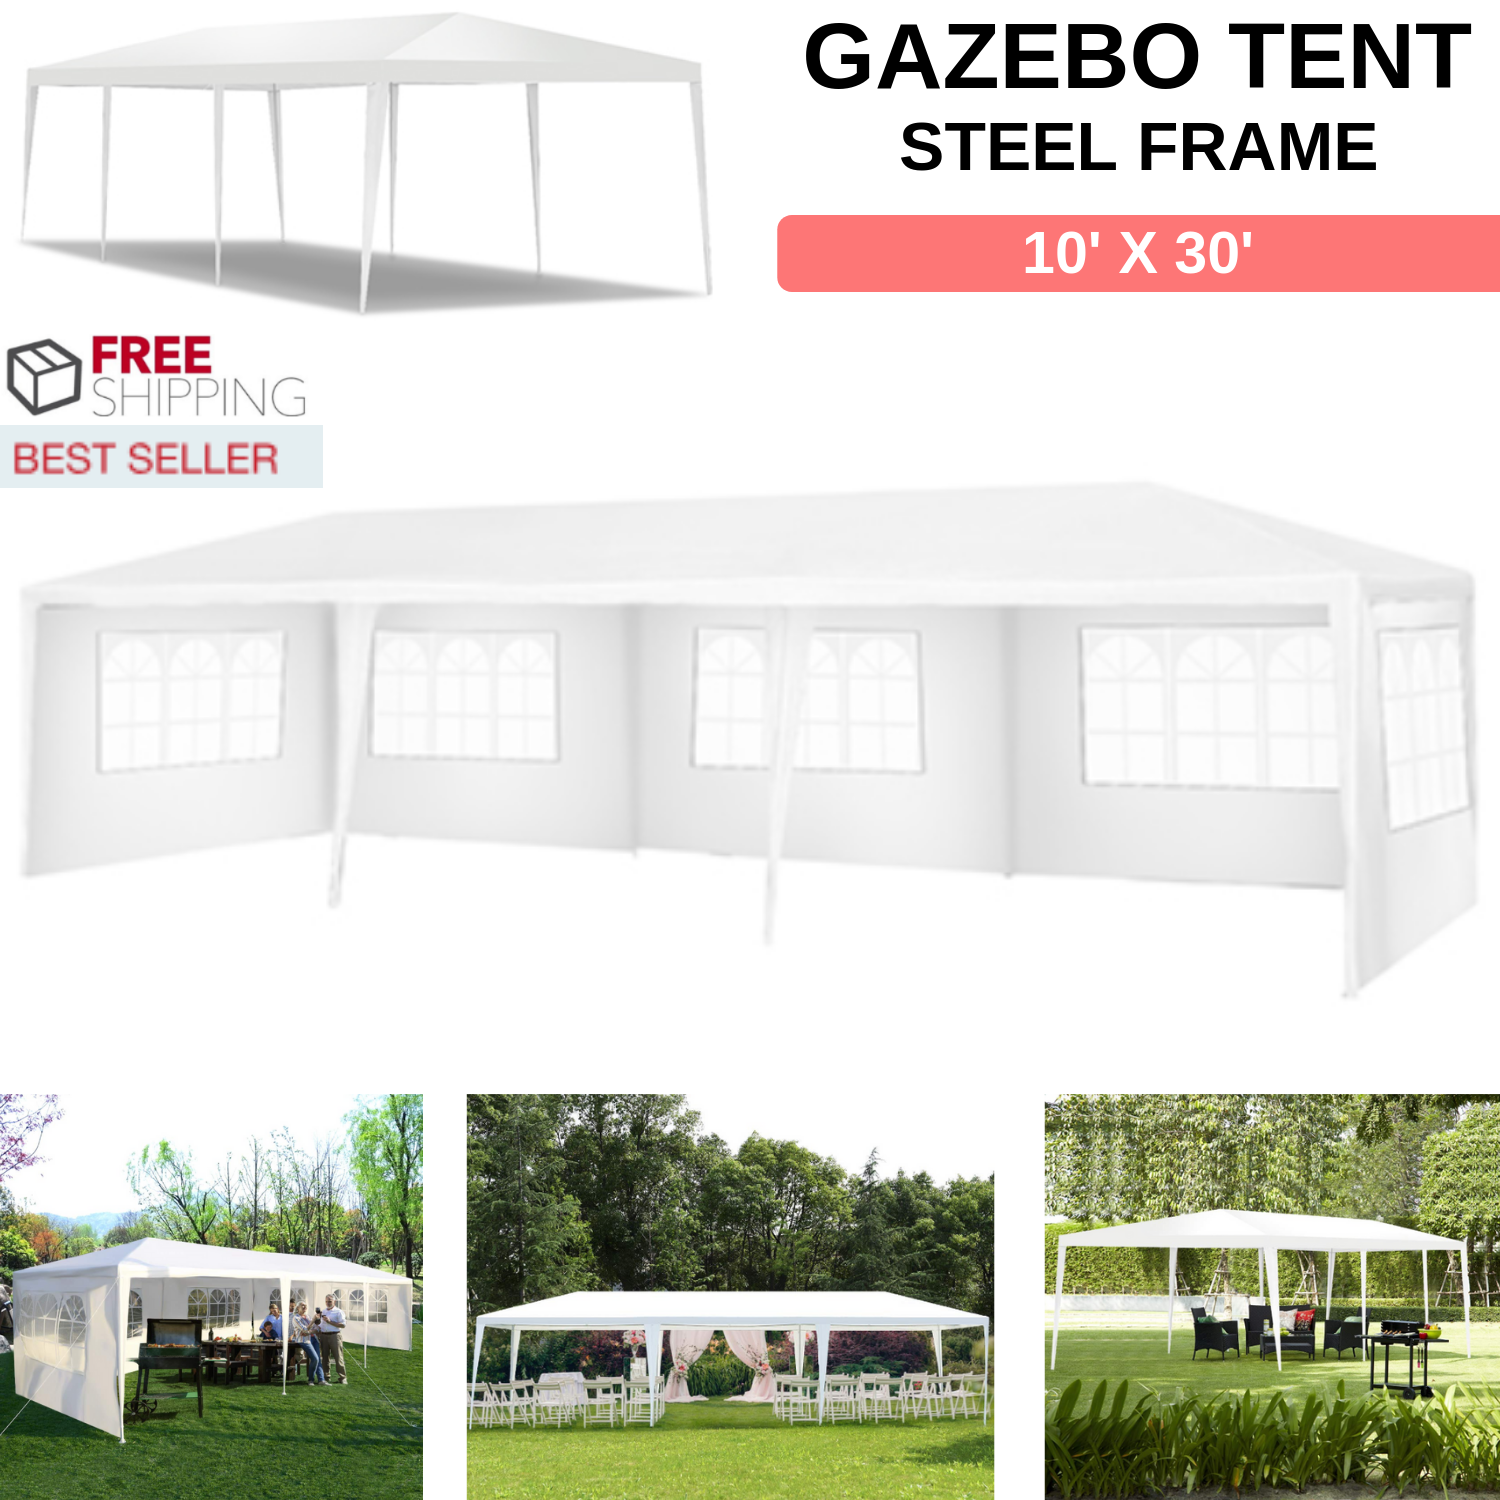 Outdoor Gazebo Canopy Tent Size 10' x 30' Steel Frame With 5 Removable Sidewalls